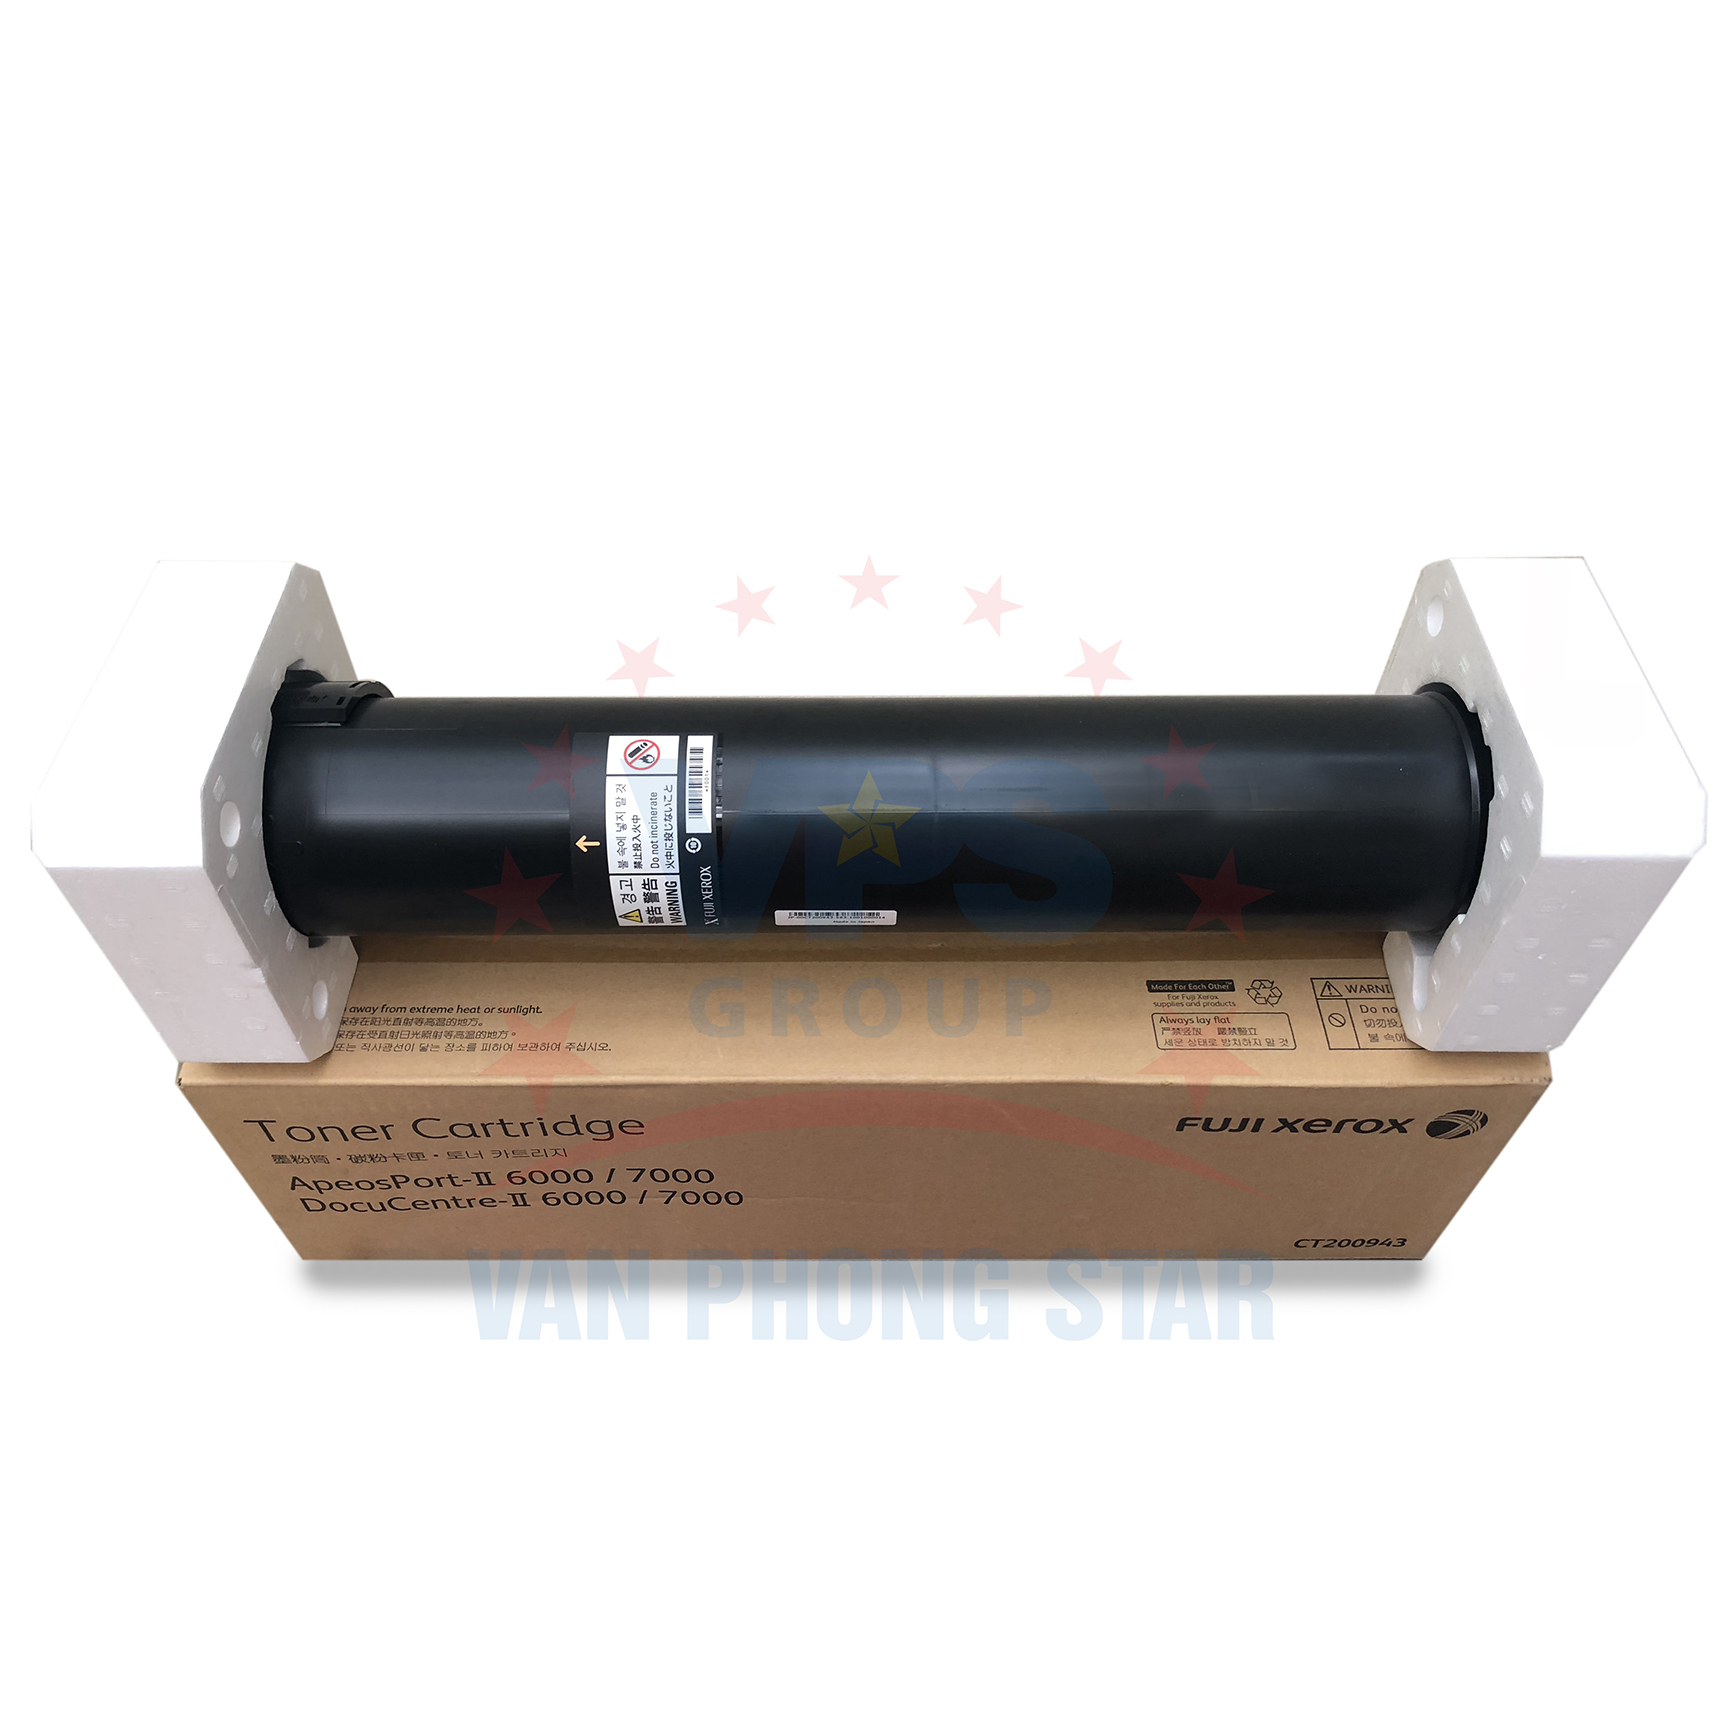 toner-cartridge-docucentre-ii-6000-7000